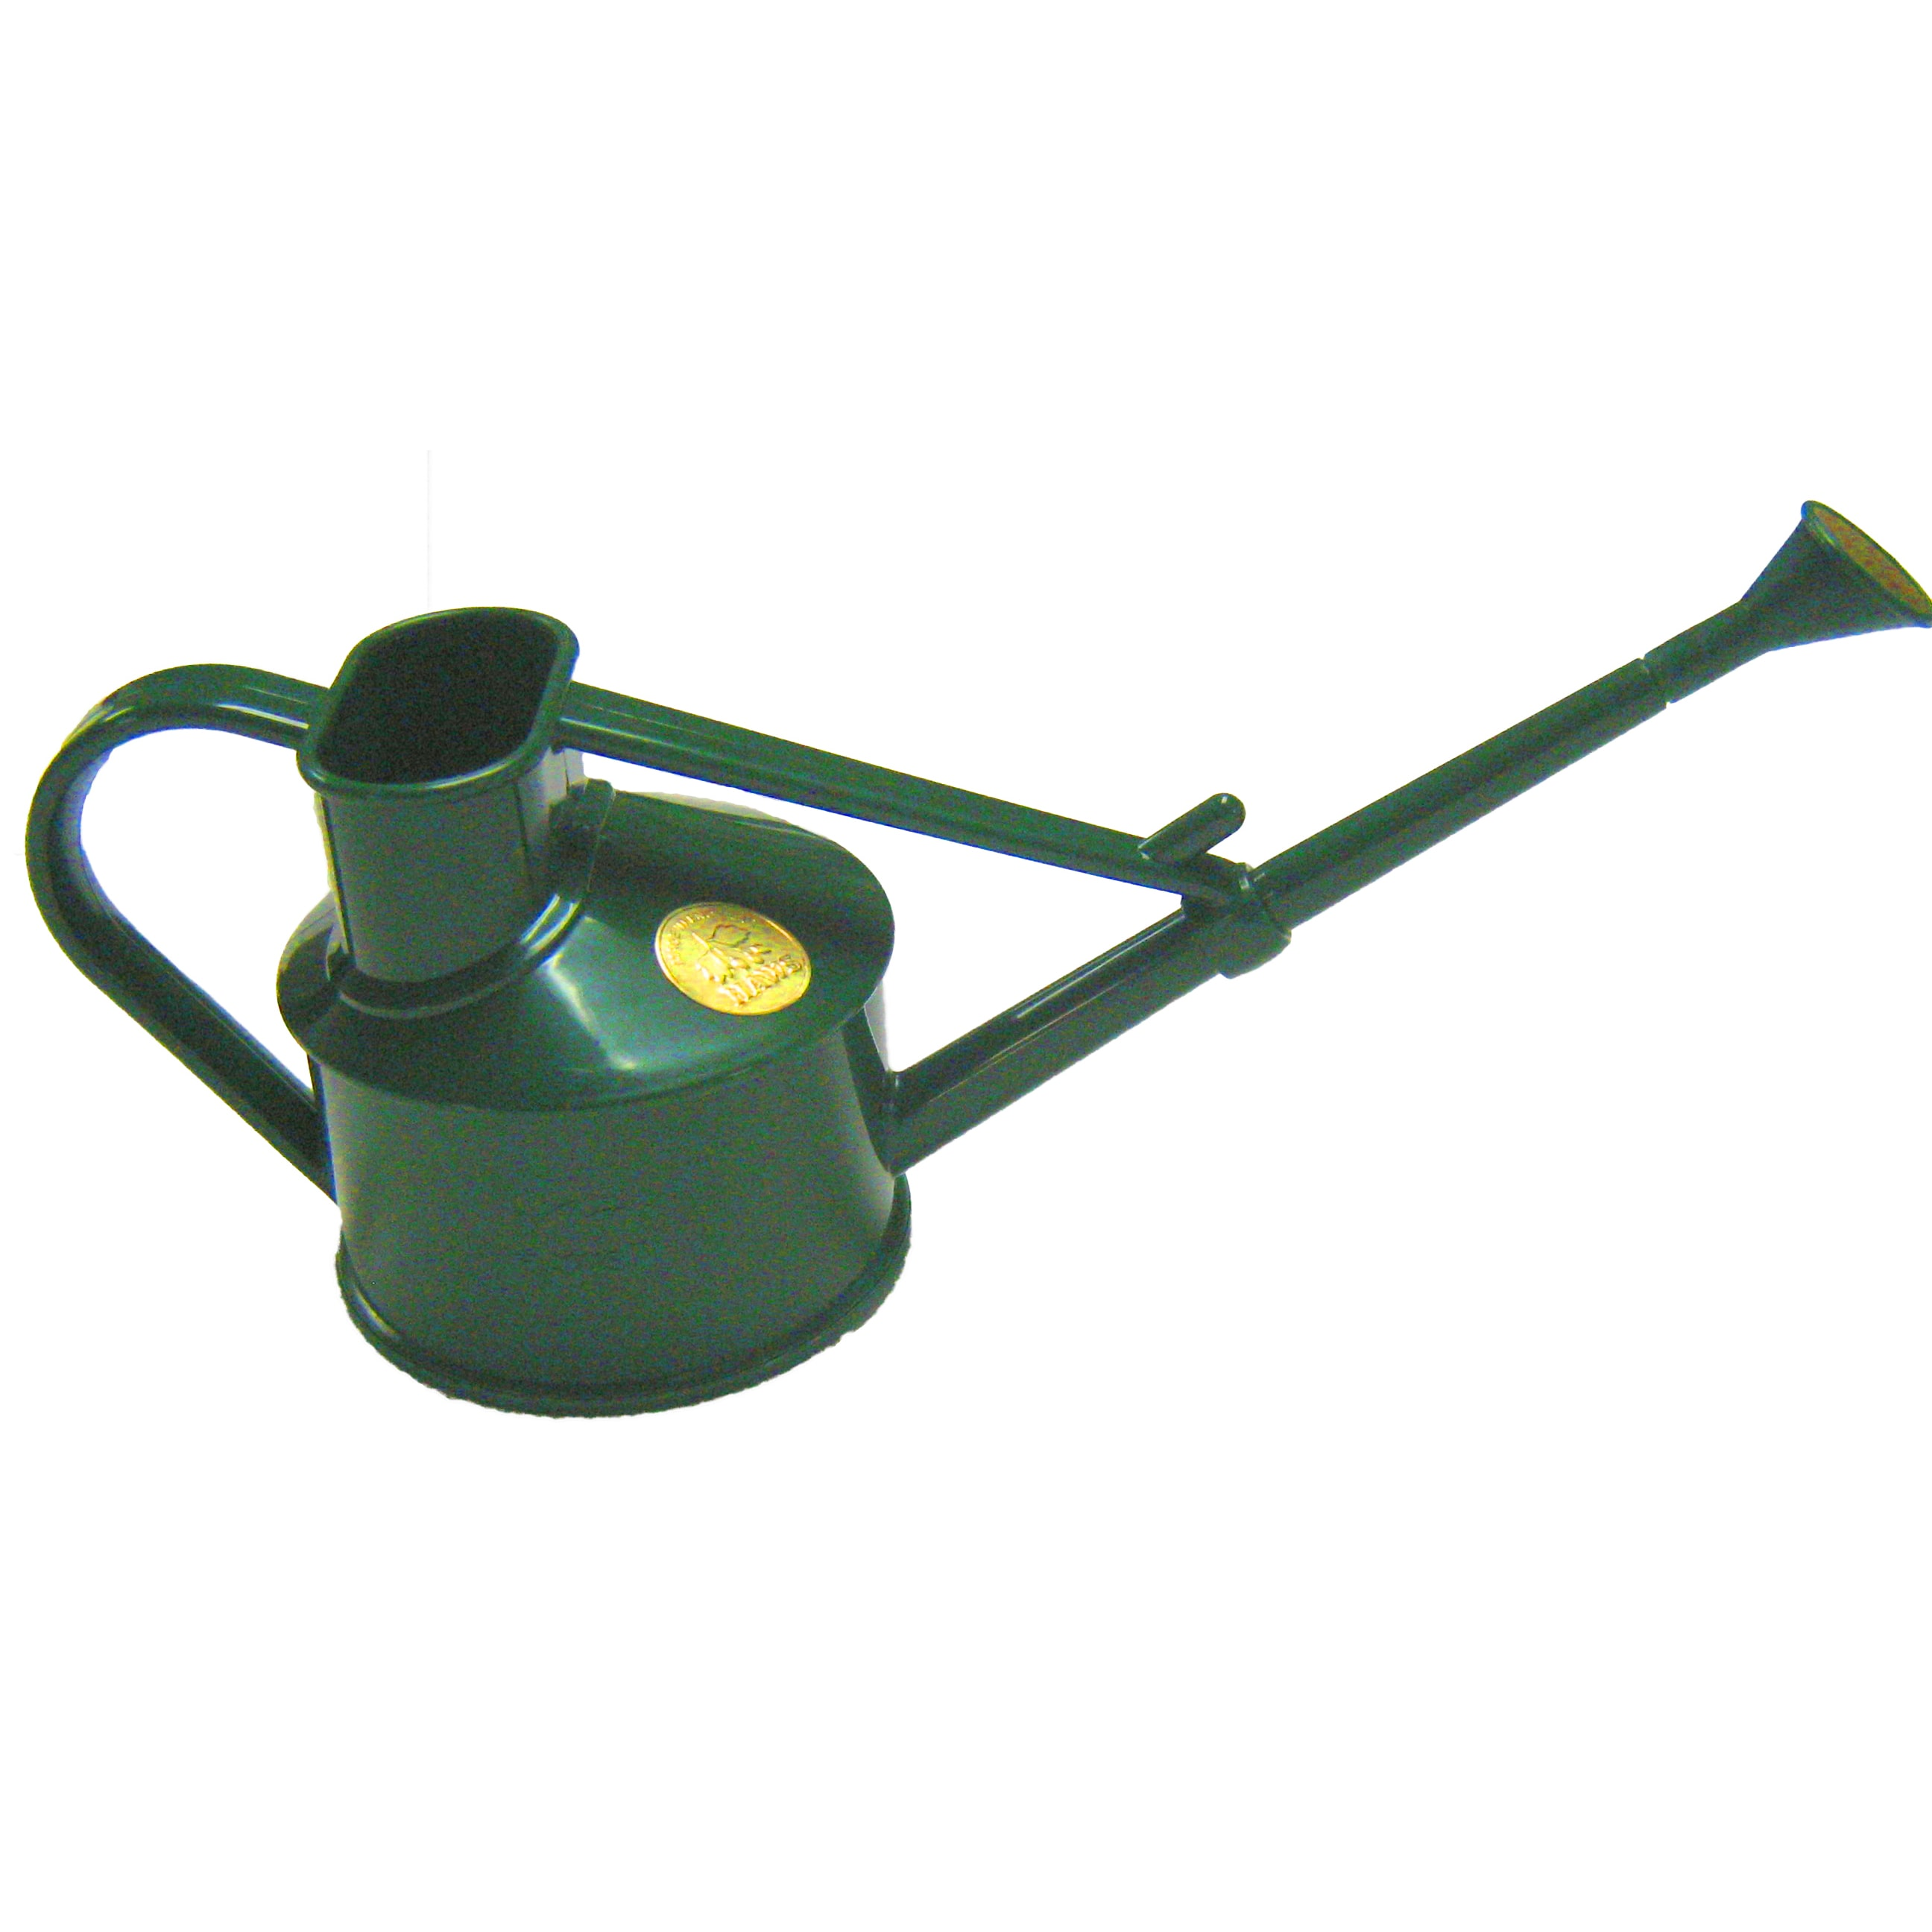 shop haws english garden handy 1 pint plastic watering can on sale free shipping on orders over 45 overstockcom 9741195 - Garden Watering Can